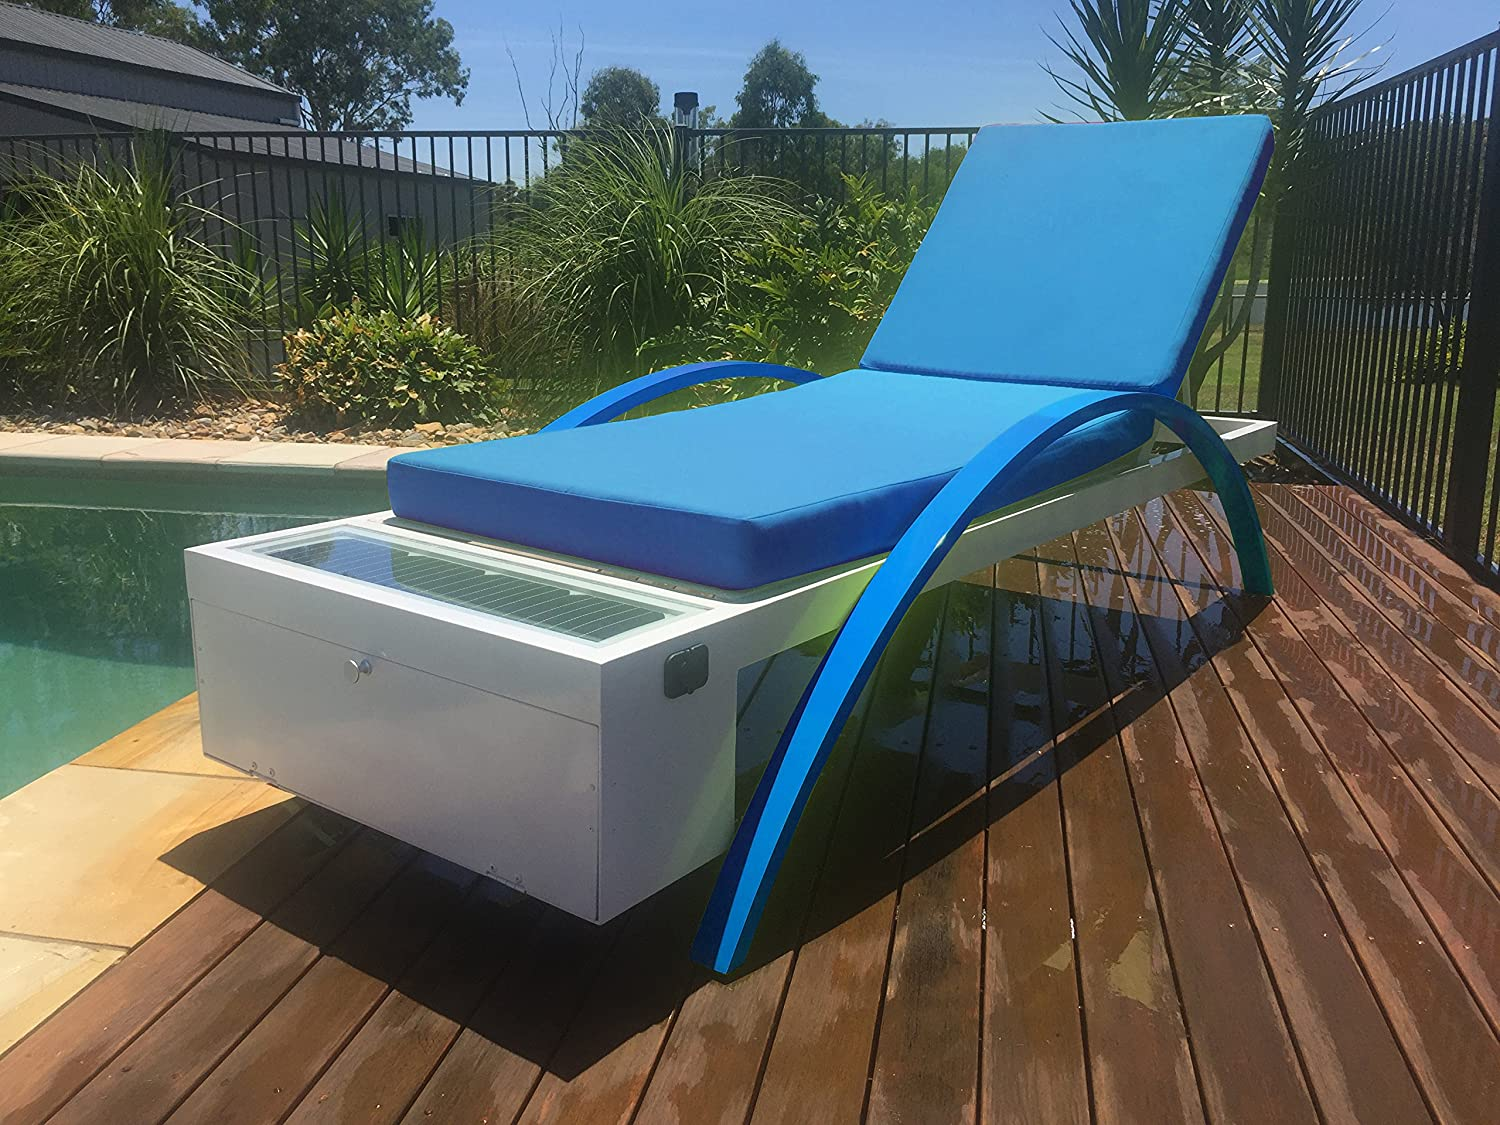 Solar Powered Chaise Lounge with Solar Panel for Charging Phones, Laptops and Tablets. Includes Two USB Charging Ports, 12v Power Outlet and Locker. All-Weather Outdoor Patio (Blue)